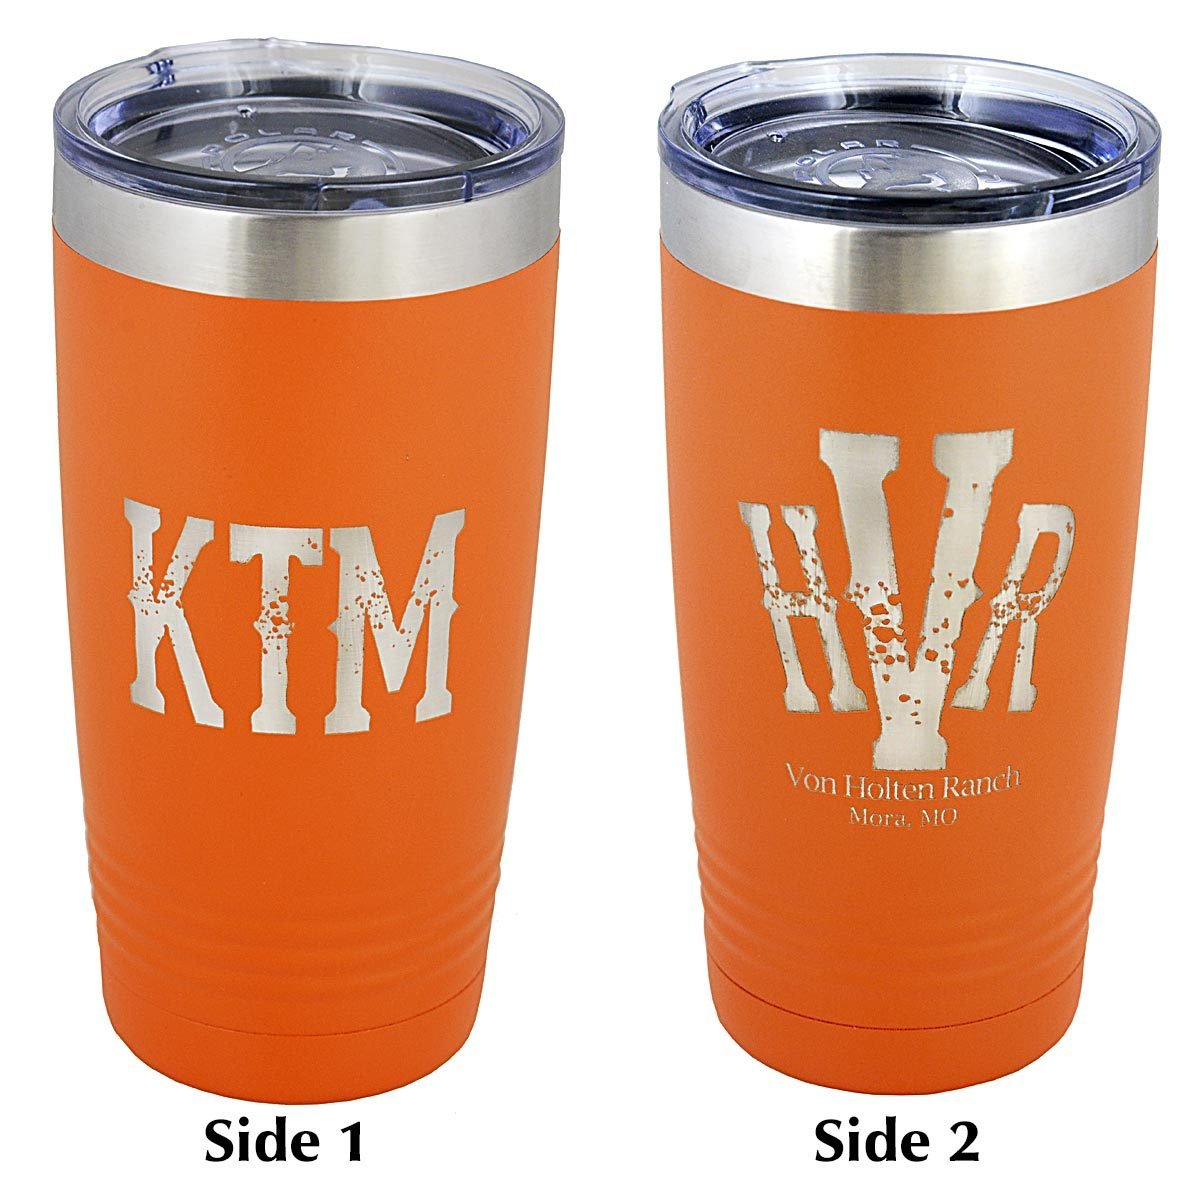 KTM 20 oz. Insulated Tumbler